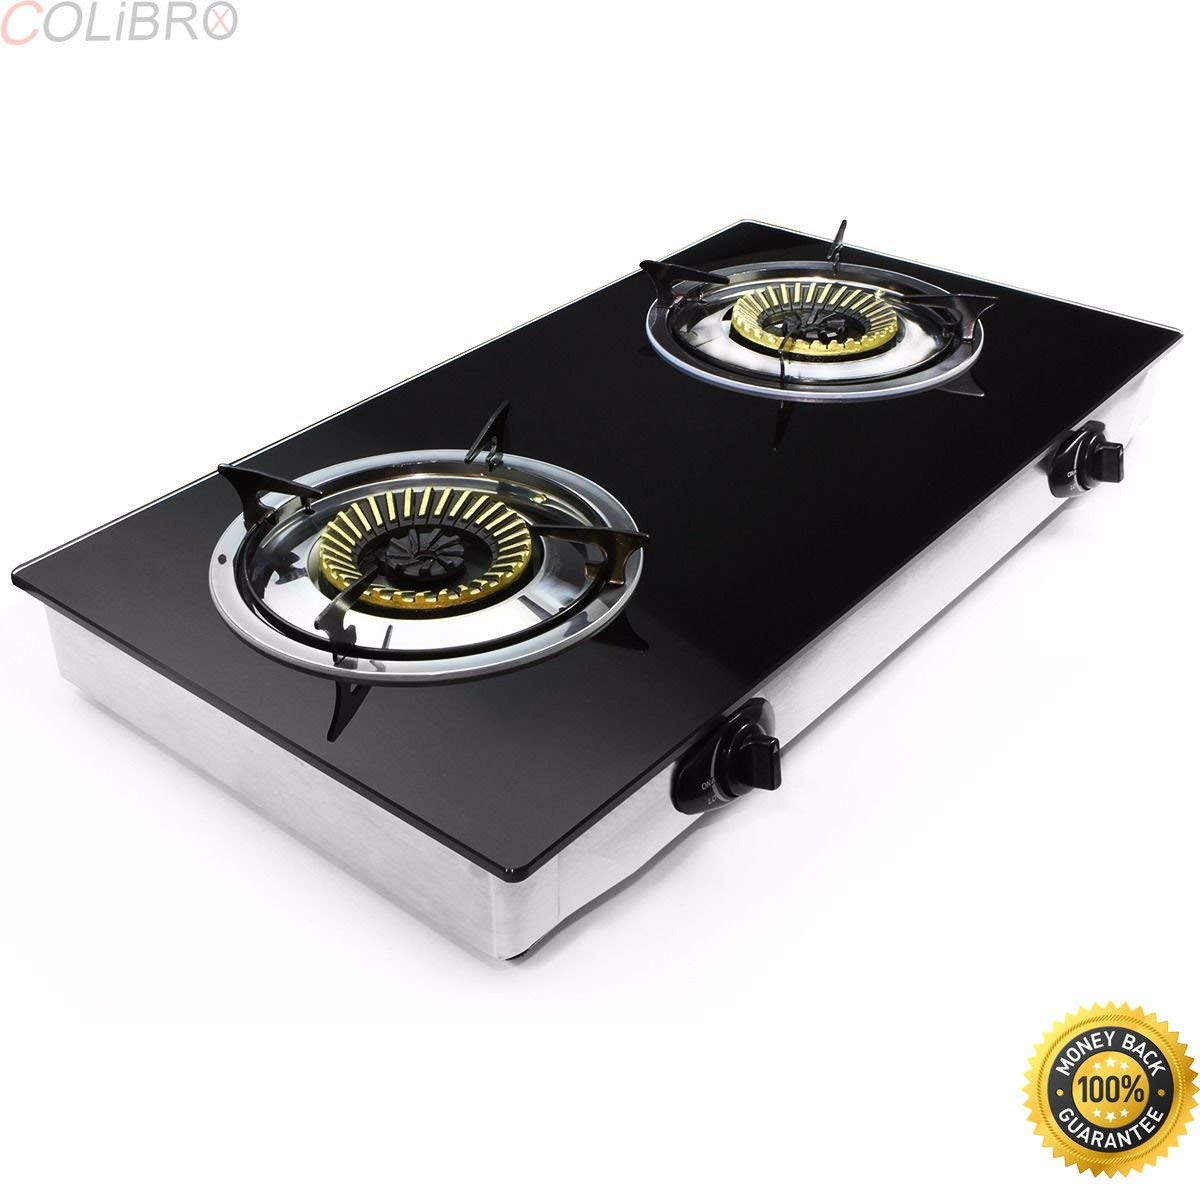 COLIBROX--2 Burner Stove Gas Propane Range Tempered Ignition Camping Outdoor Glass Cooktop. Propane Gas Range Stove Deluxe 2 Burner Tempered Glass Cooktop.